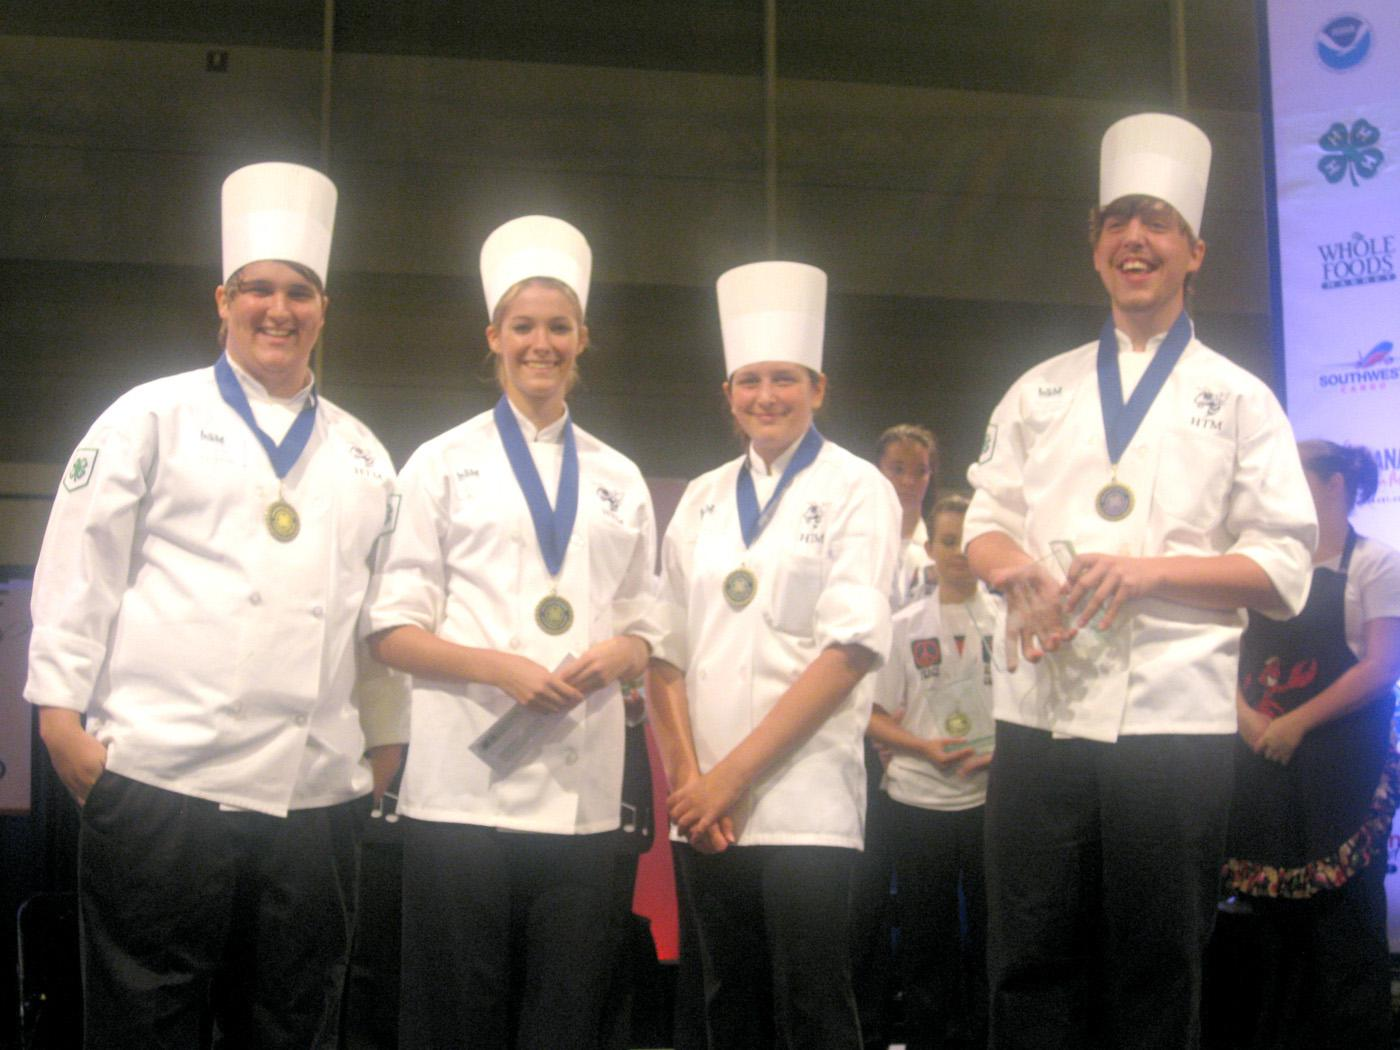 The Jackson County 4-H team of chefs from St. Martin High School (from left), Cory Martin, Sarah Soares, Adriana Wilson, and Jarod Harris, were named grand champions of the first-ever Southern Regional 4-H Seafood Cook-Off, held in conjunction with the Great American Seafood Cook-Off in New Orleans. (Submitted photo.)